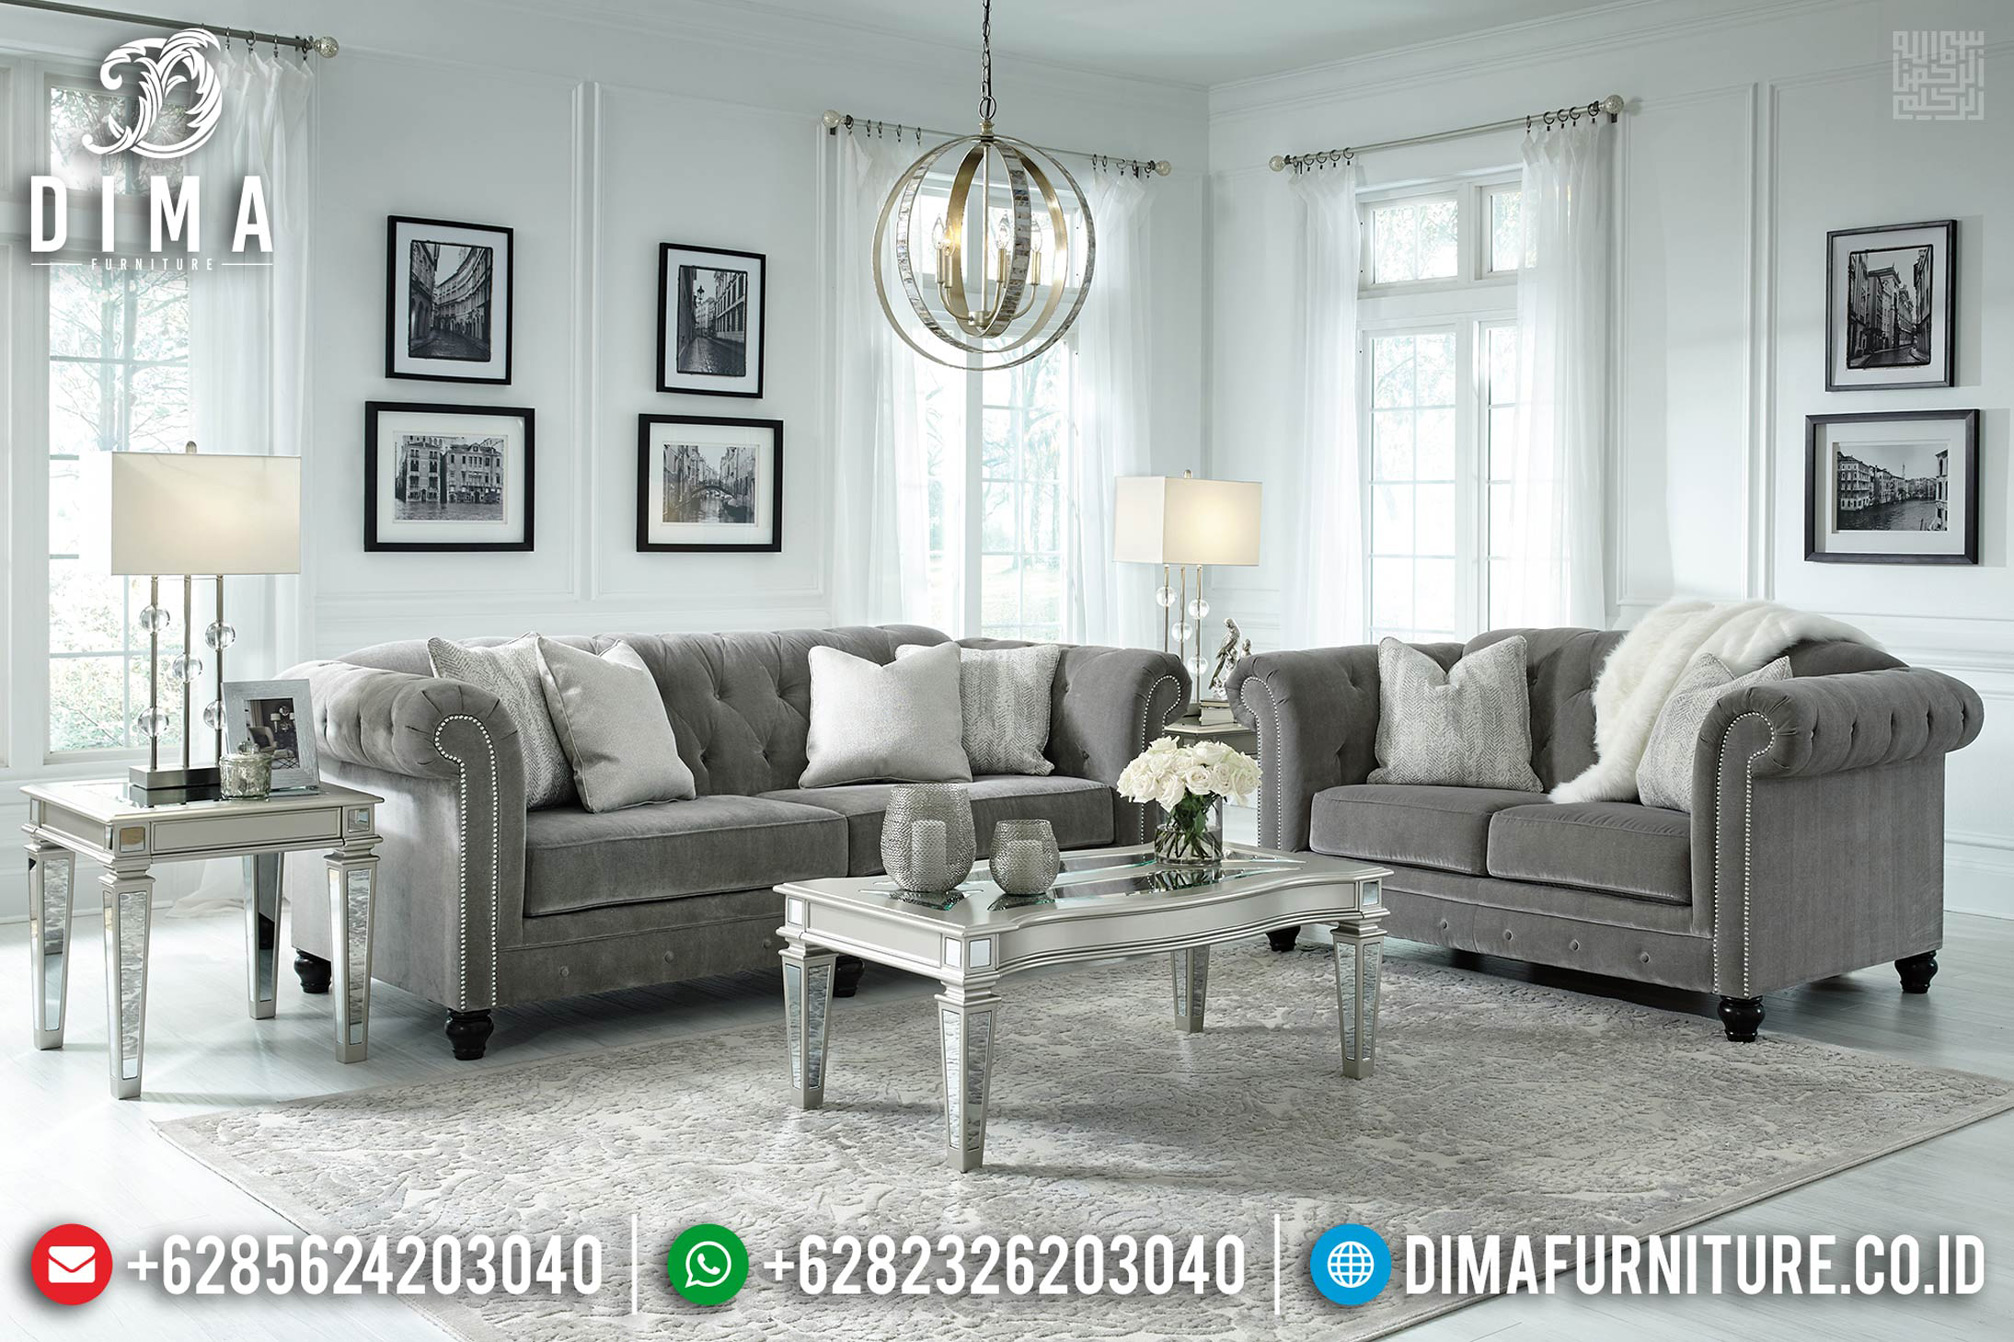 Set Sofa Tamu Minimalis Modern Kayu Jati Perhutani Furniture Jepara Mm-0709